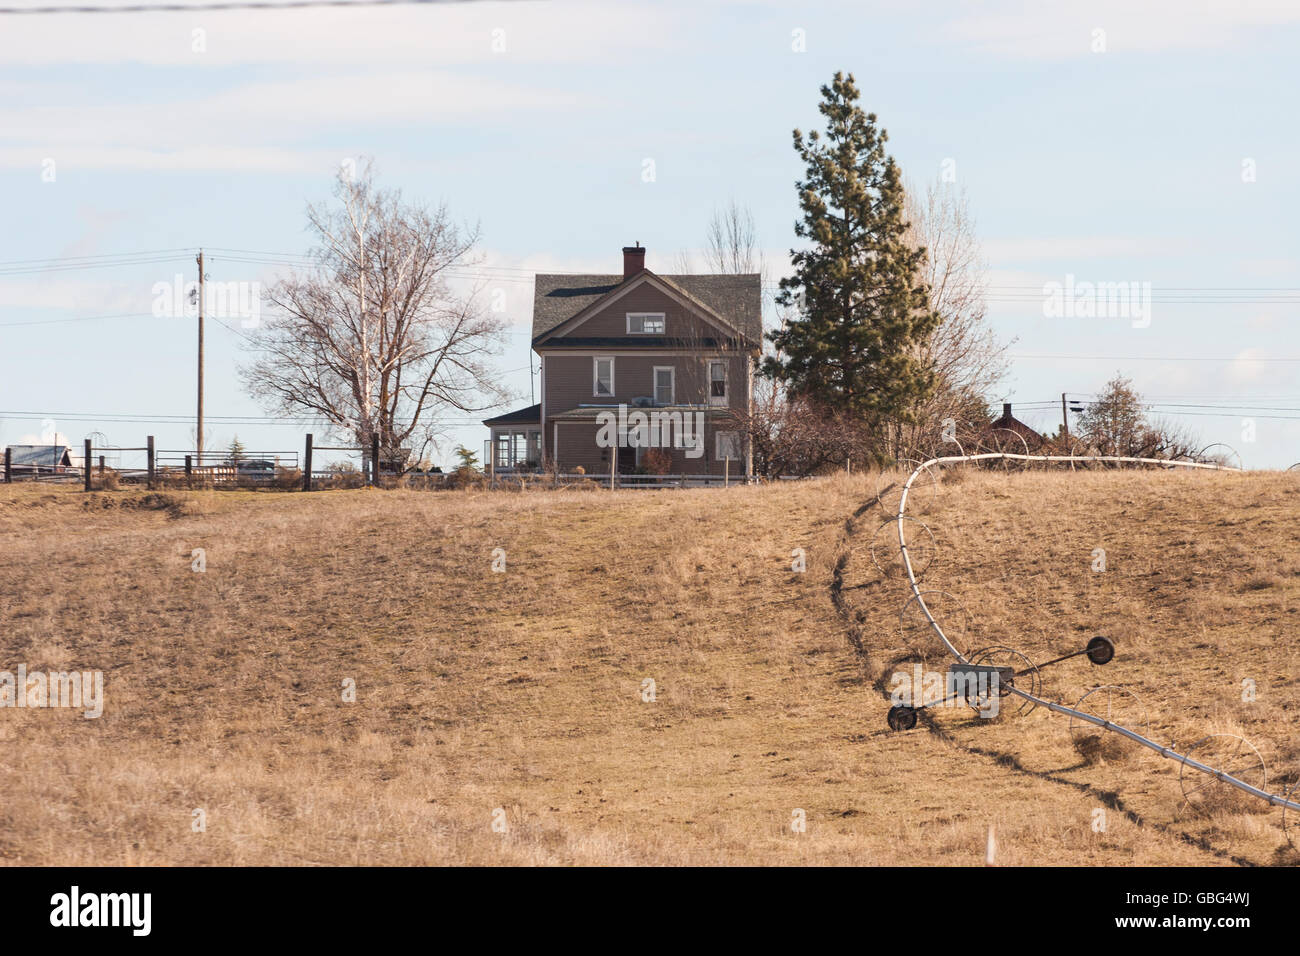 Old farm house on a hill - Stock Image